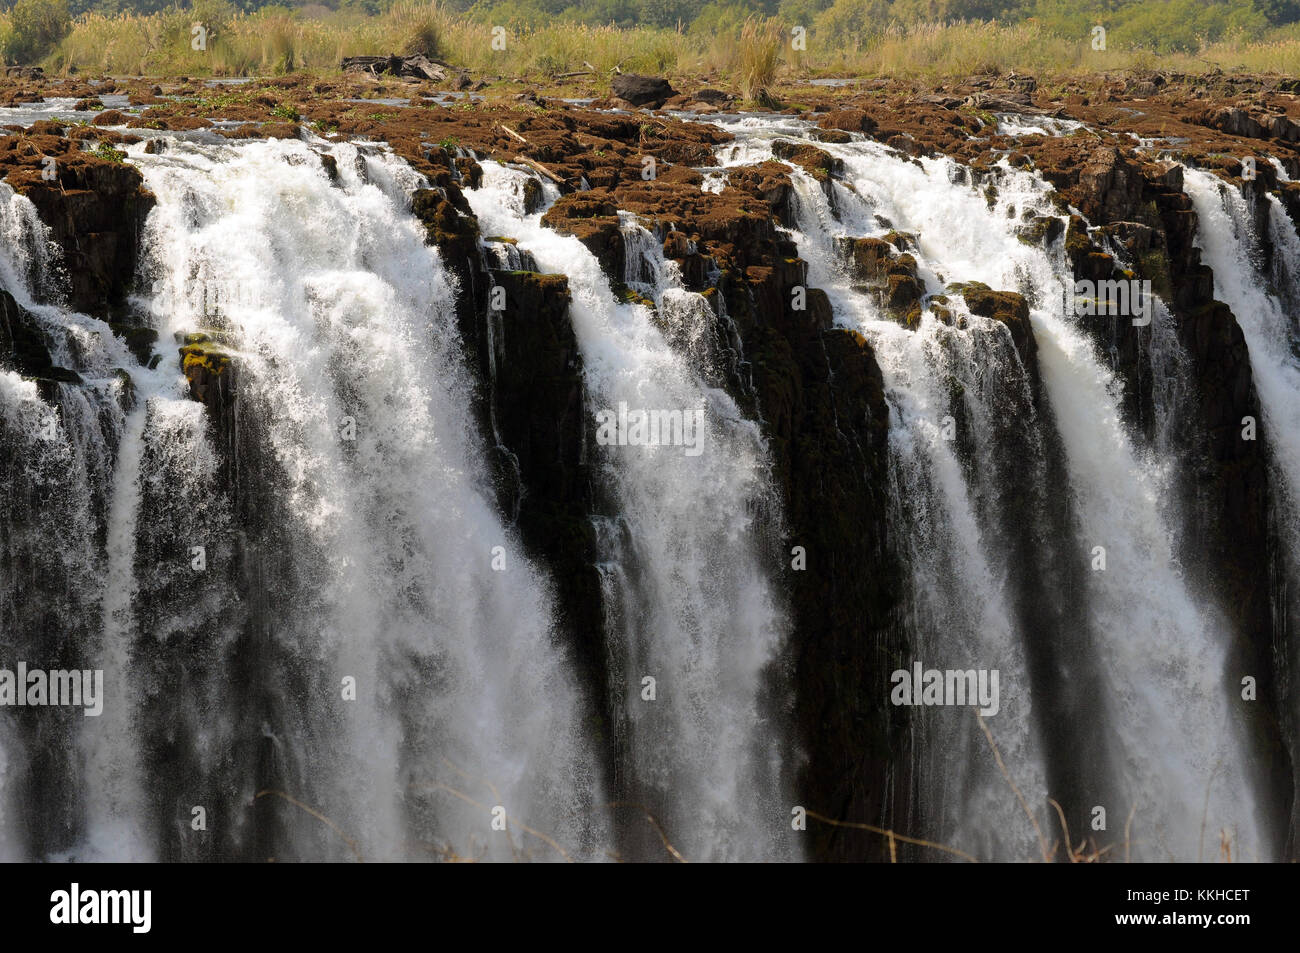 Kazungula, Zimbabwe. 30th July, 2015. The so-called 'main falls' area of the Victoria Falls, pictured on - Stock Image